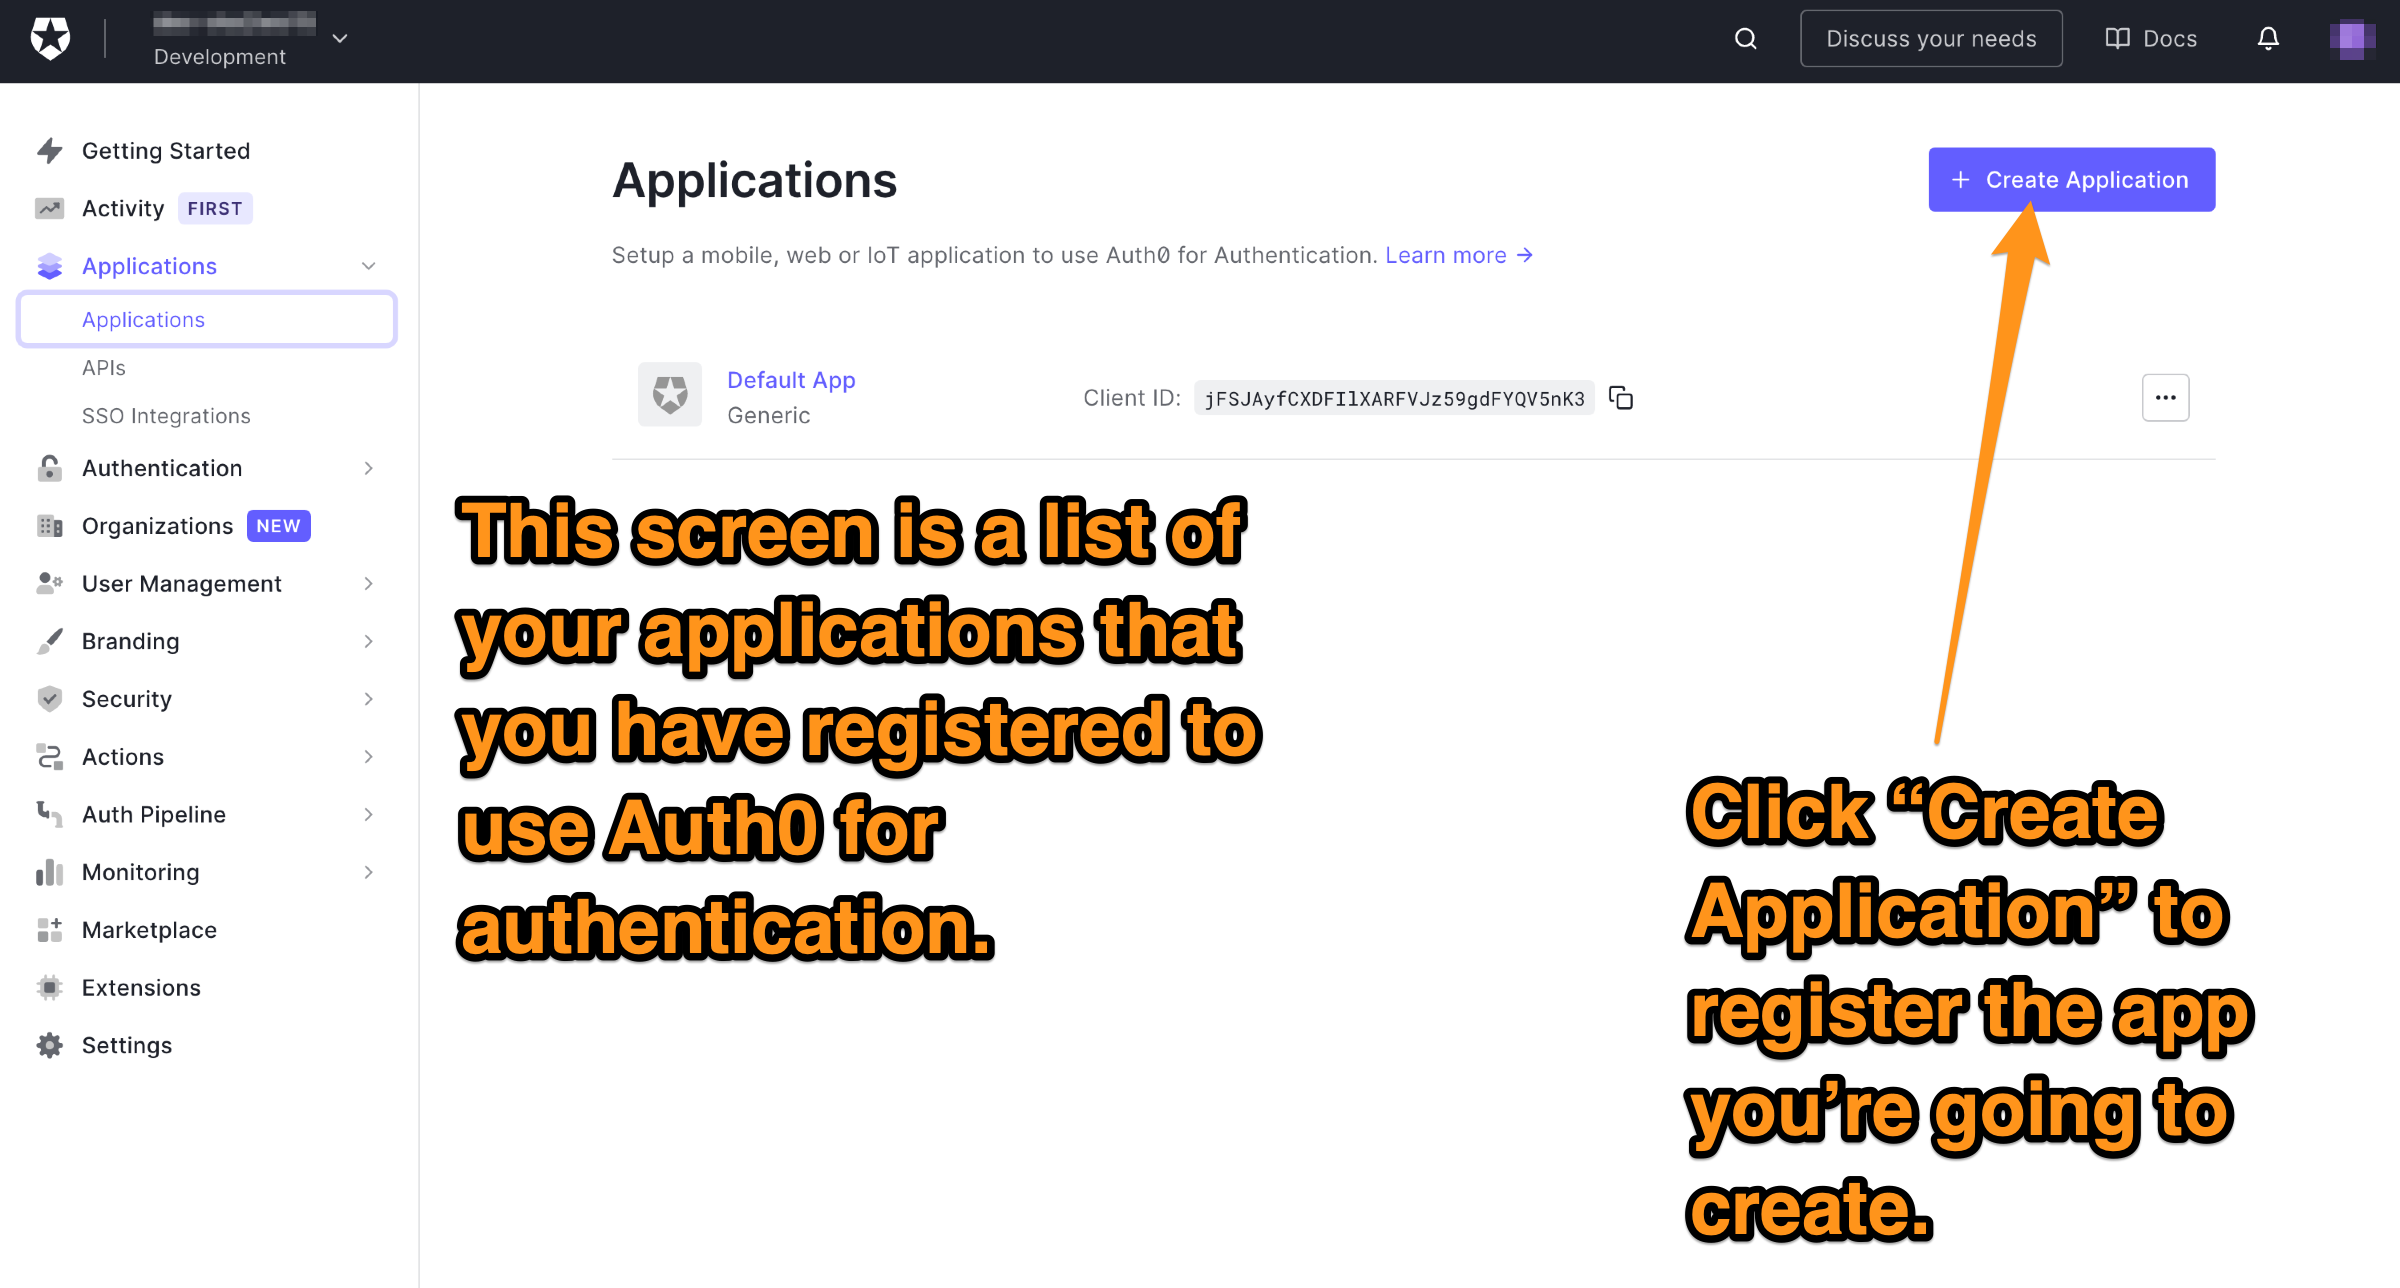 """The """"Applications"""" page. The reader is directed to click the """"Create Application"""" button."""